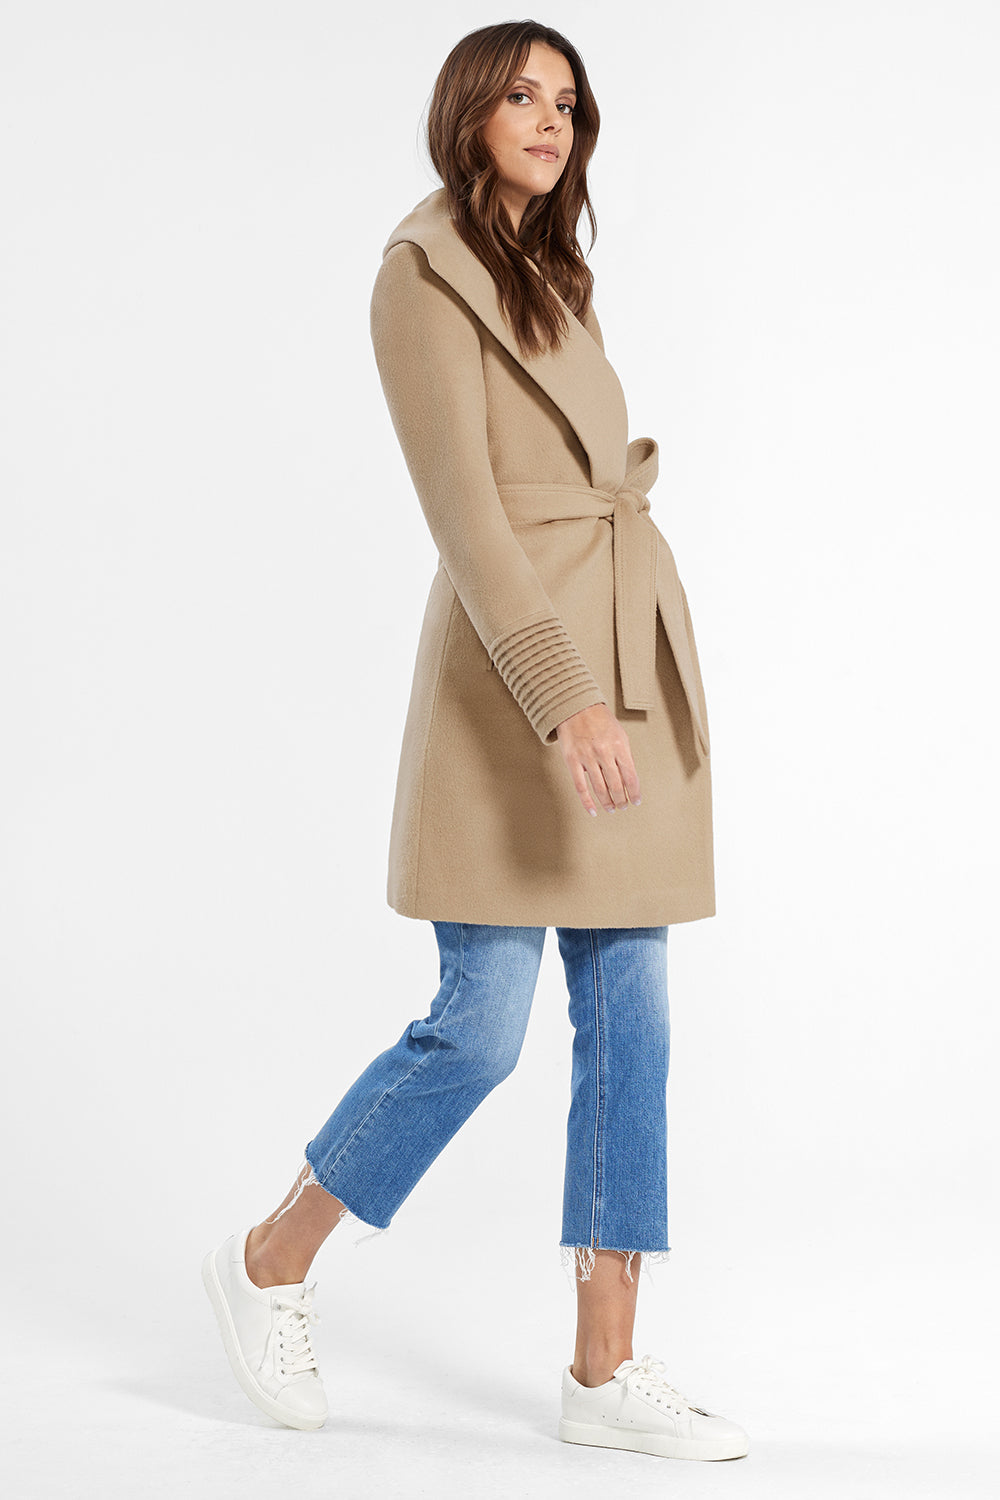 Sentaler Mid Length Shawl Collar Wrap Coat featured in Baby Alpaca and available in Camel. Seen from side.